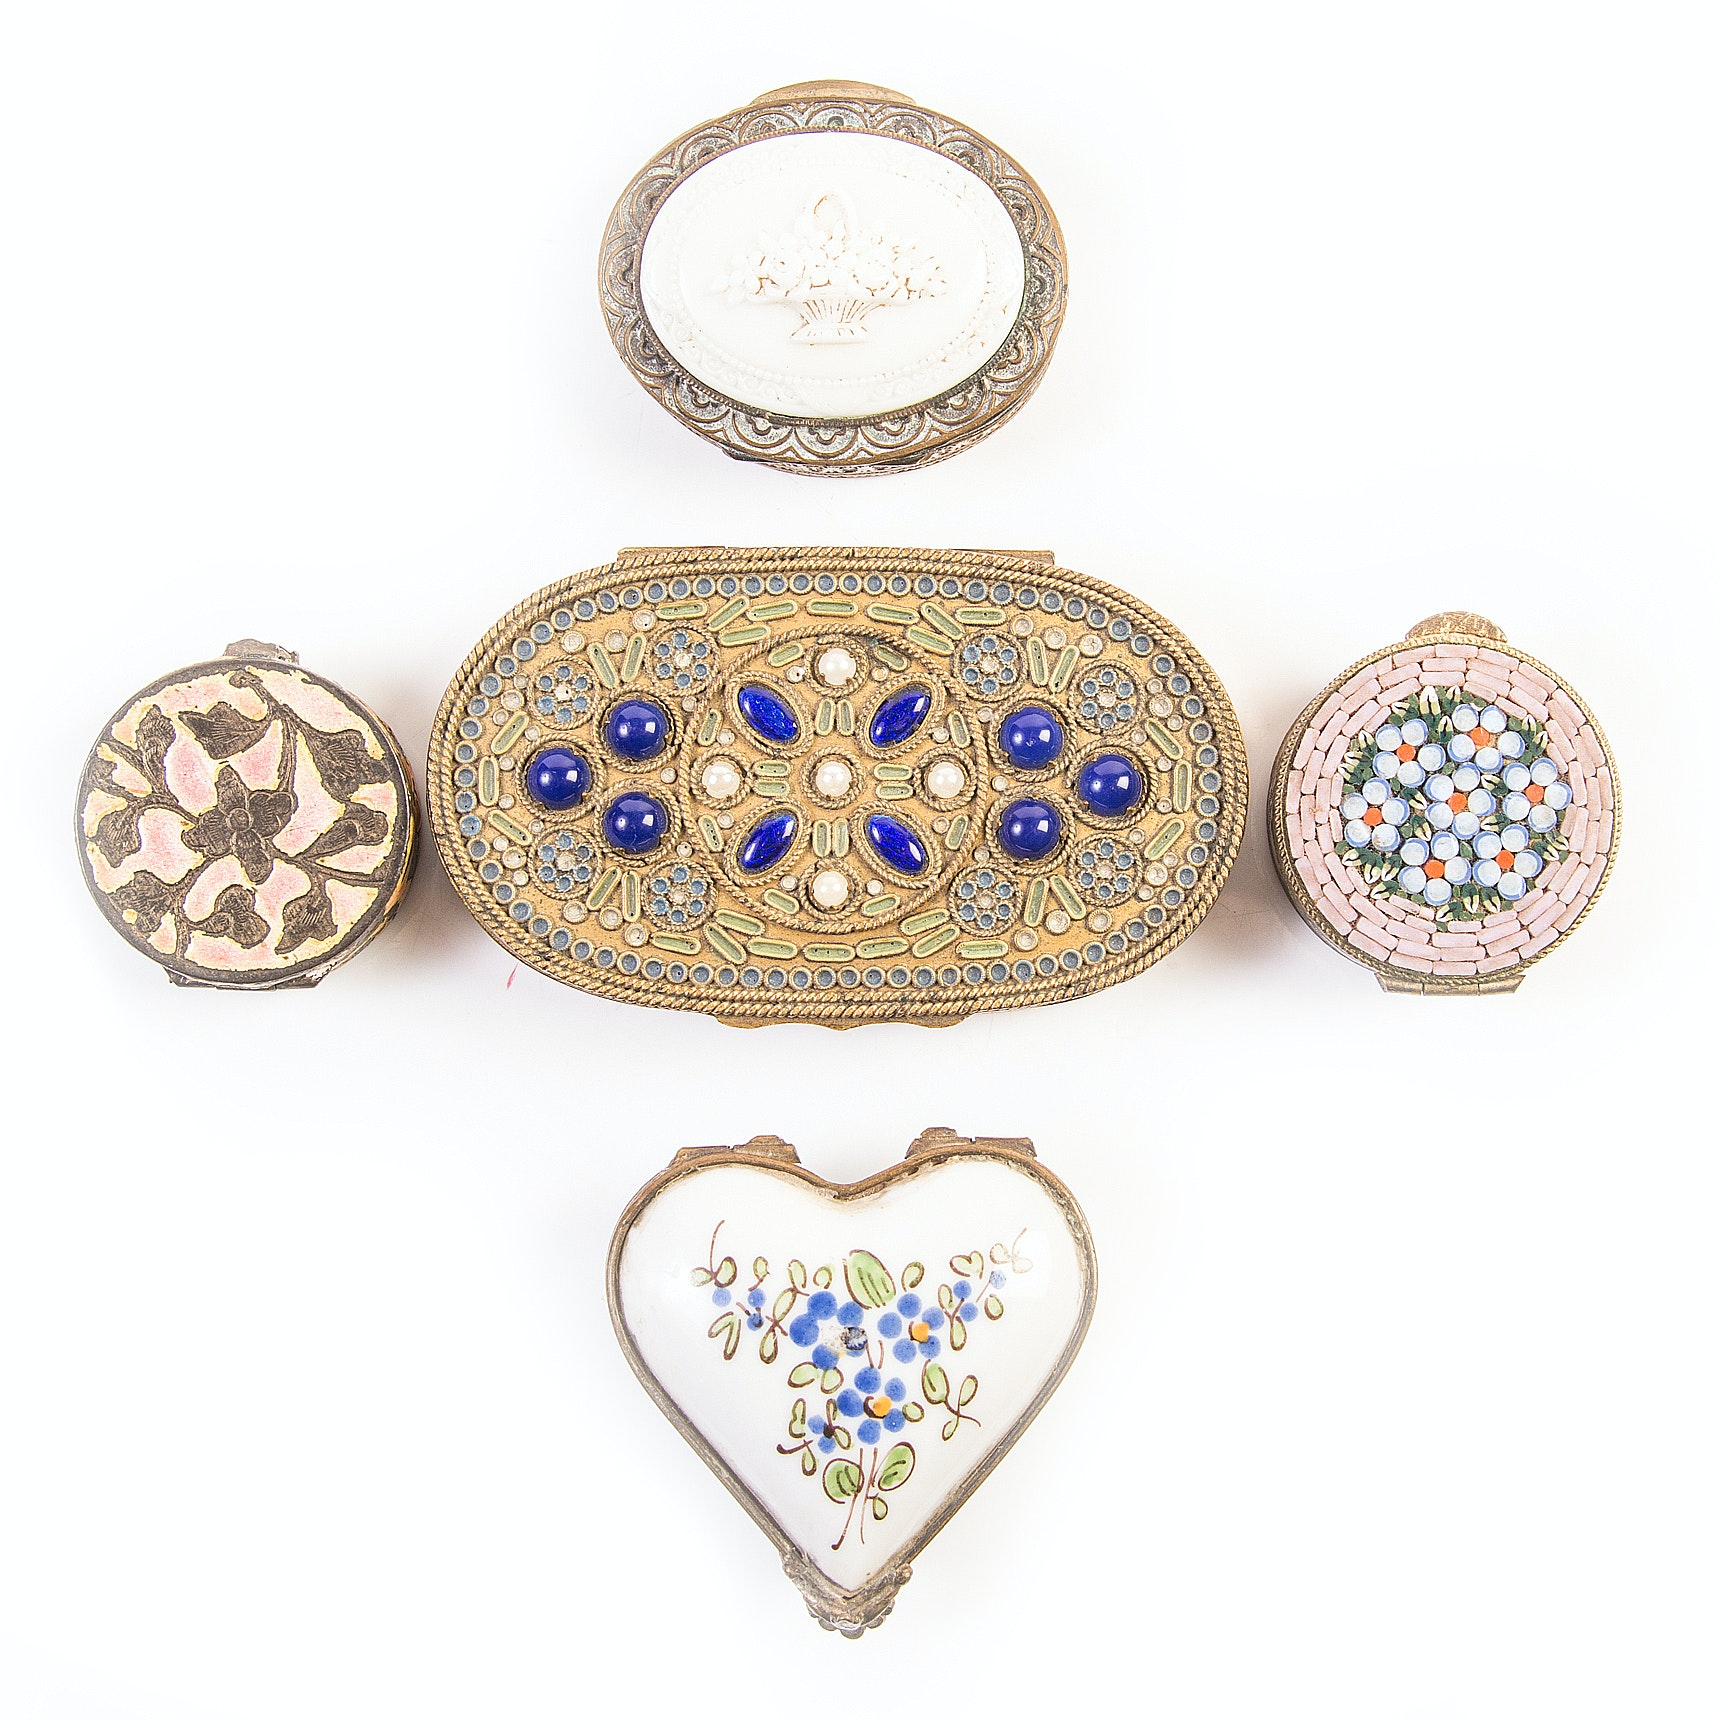 Vintage Compact and Pill Box Collection